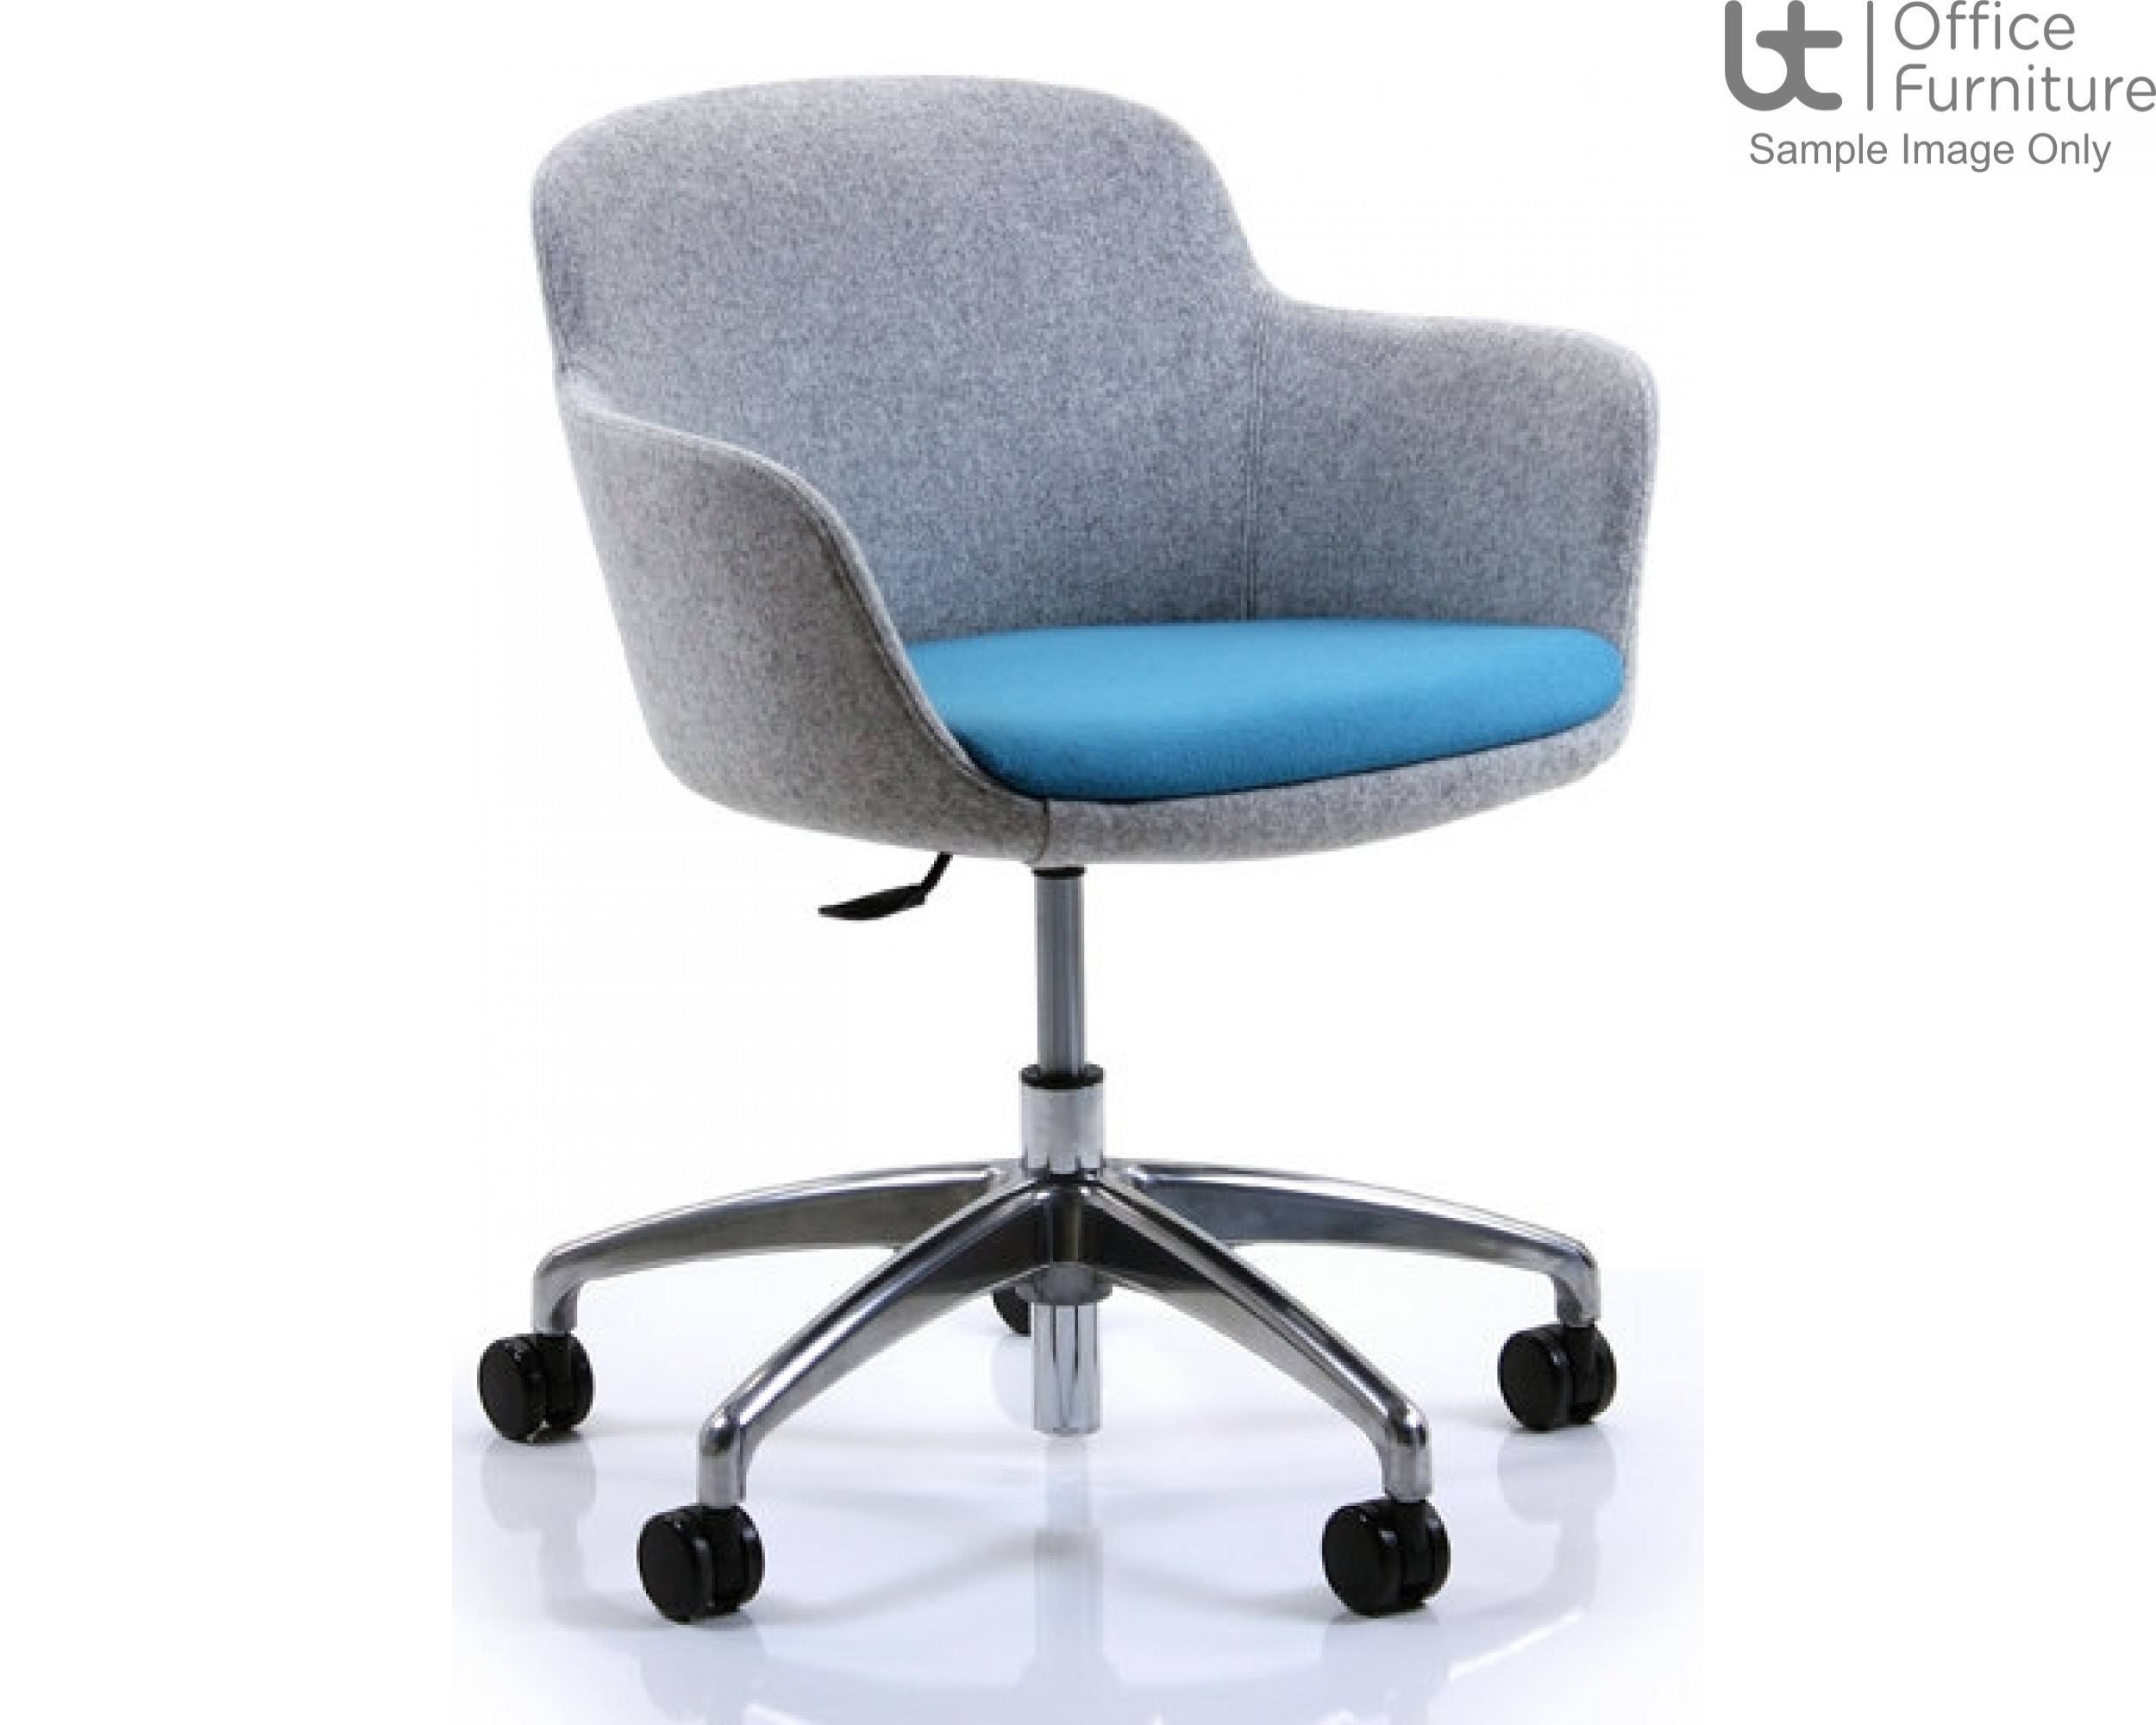 Verco Soft Seating - Danny Medium Back Swivel Tub Chair with Seat Height Adjustment